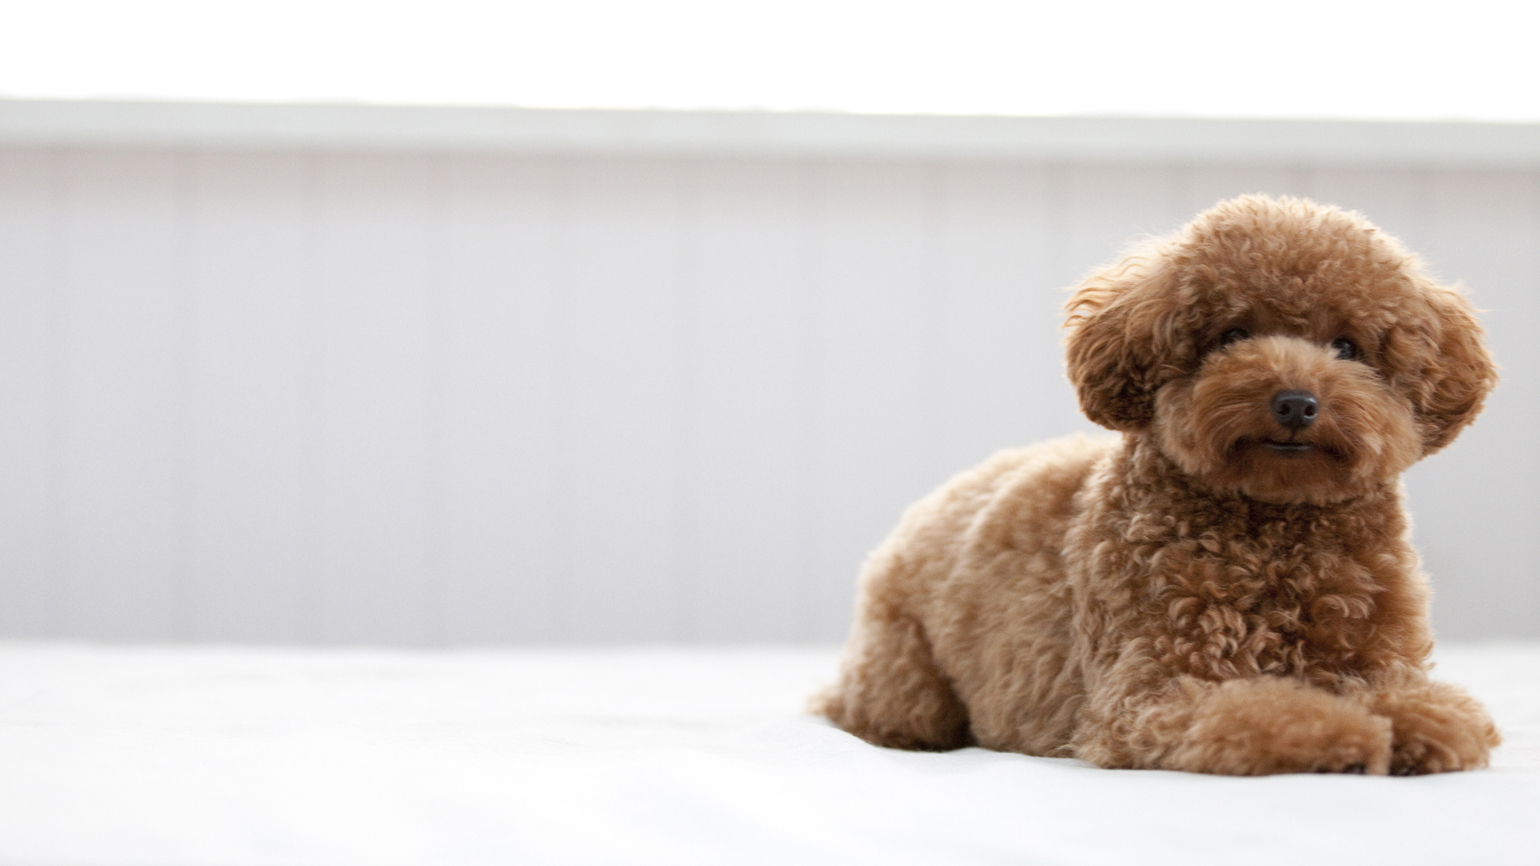 A chocolate, teacup poodle posing for the camera.